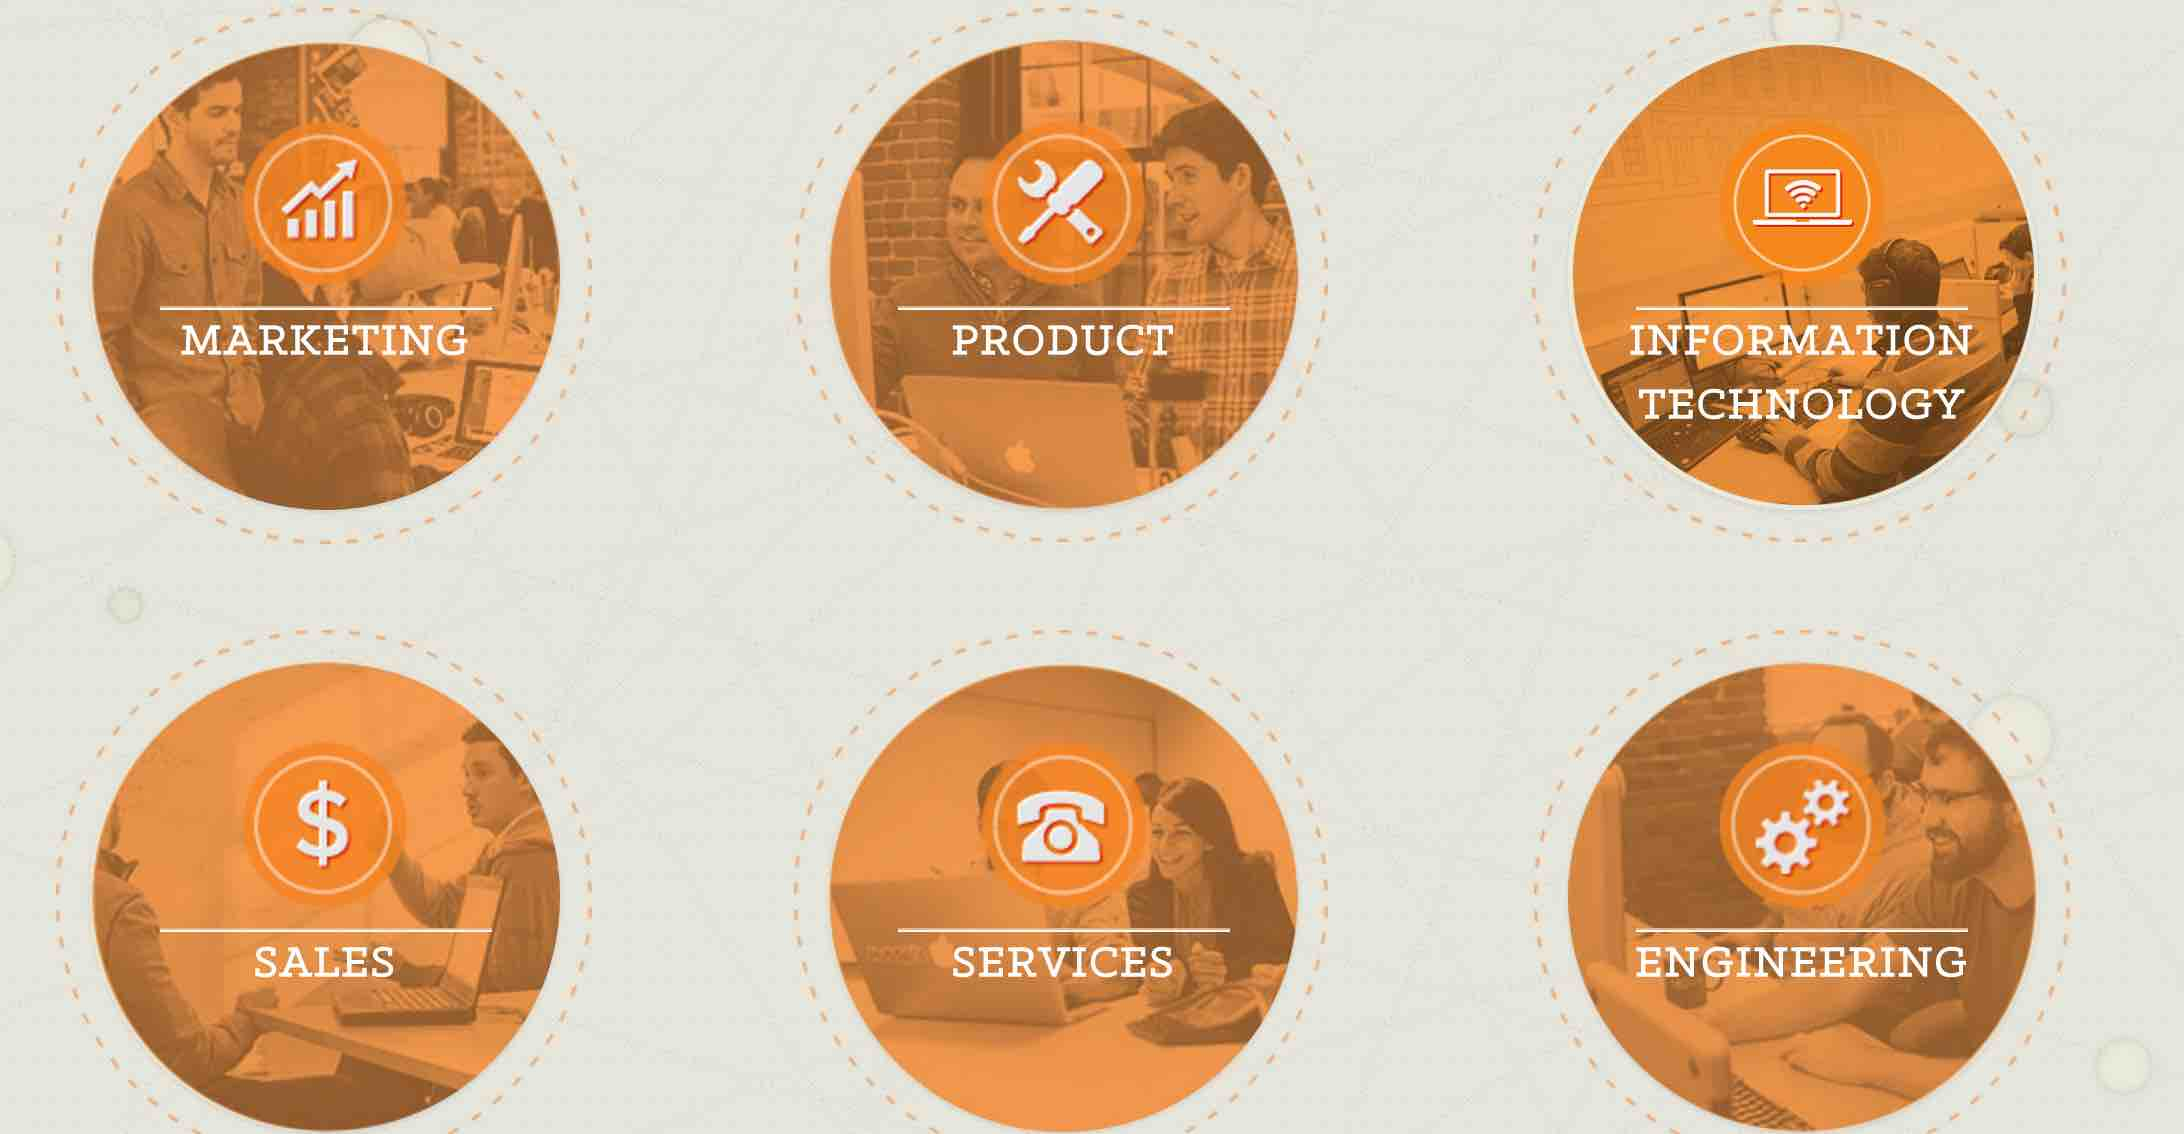 Hubspot's career site uses lots of content